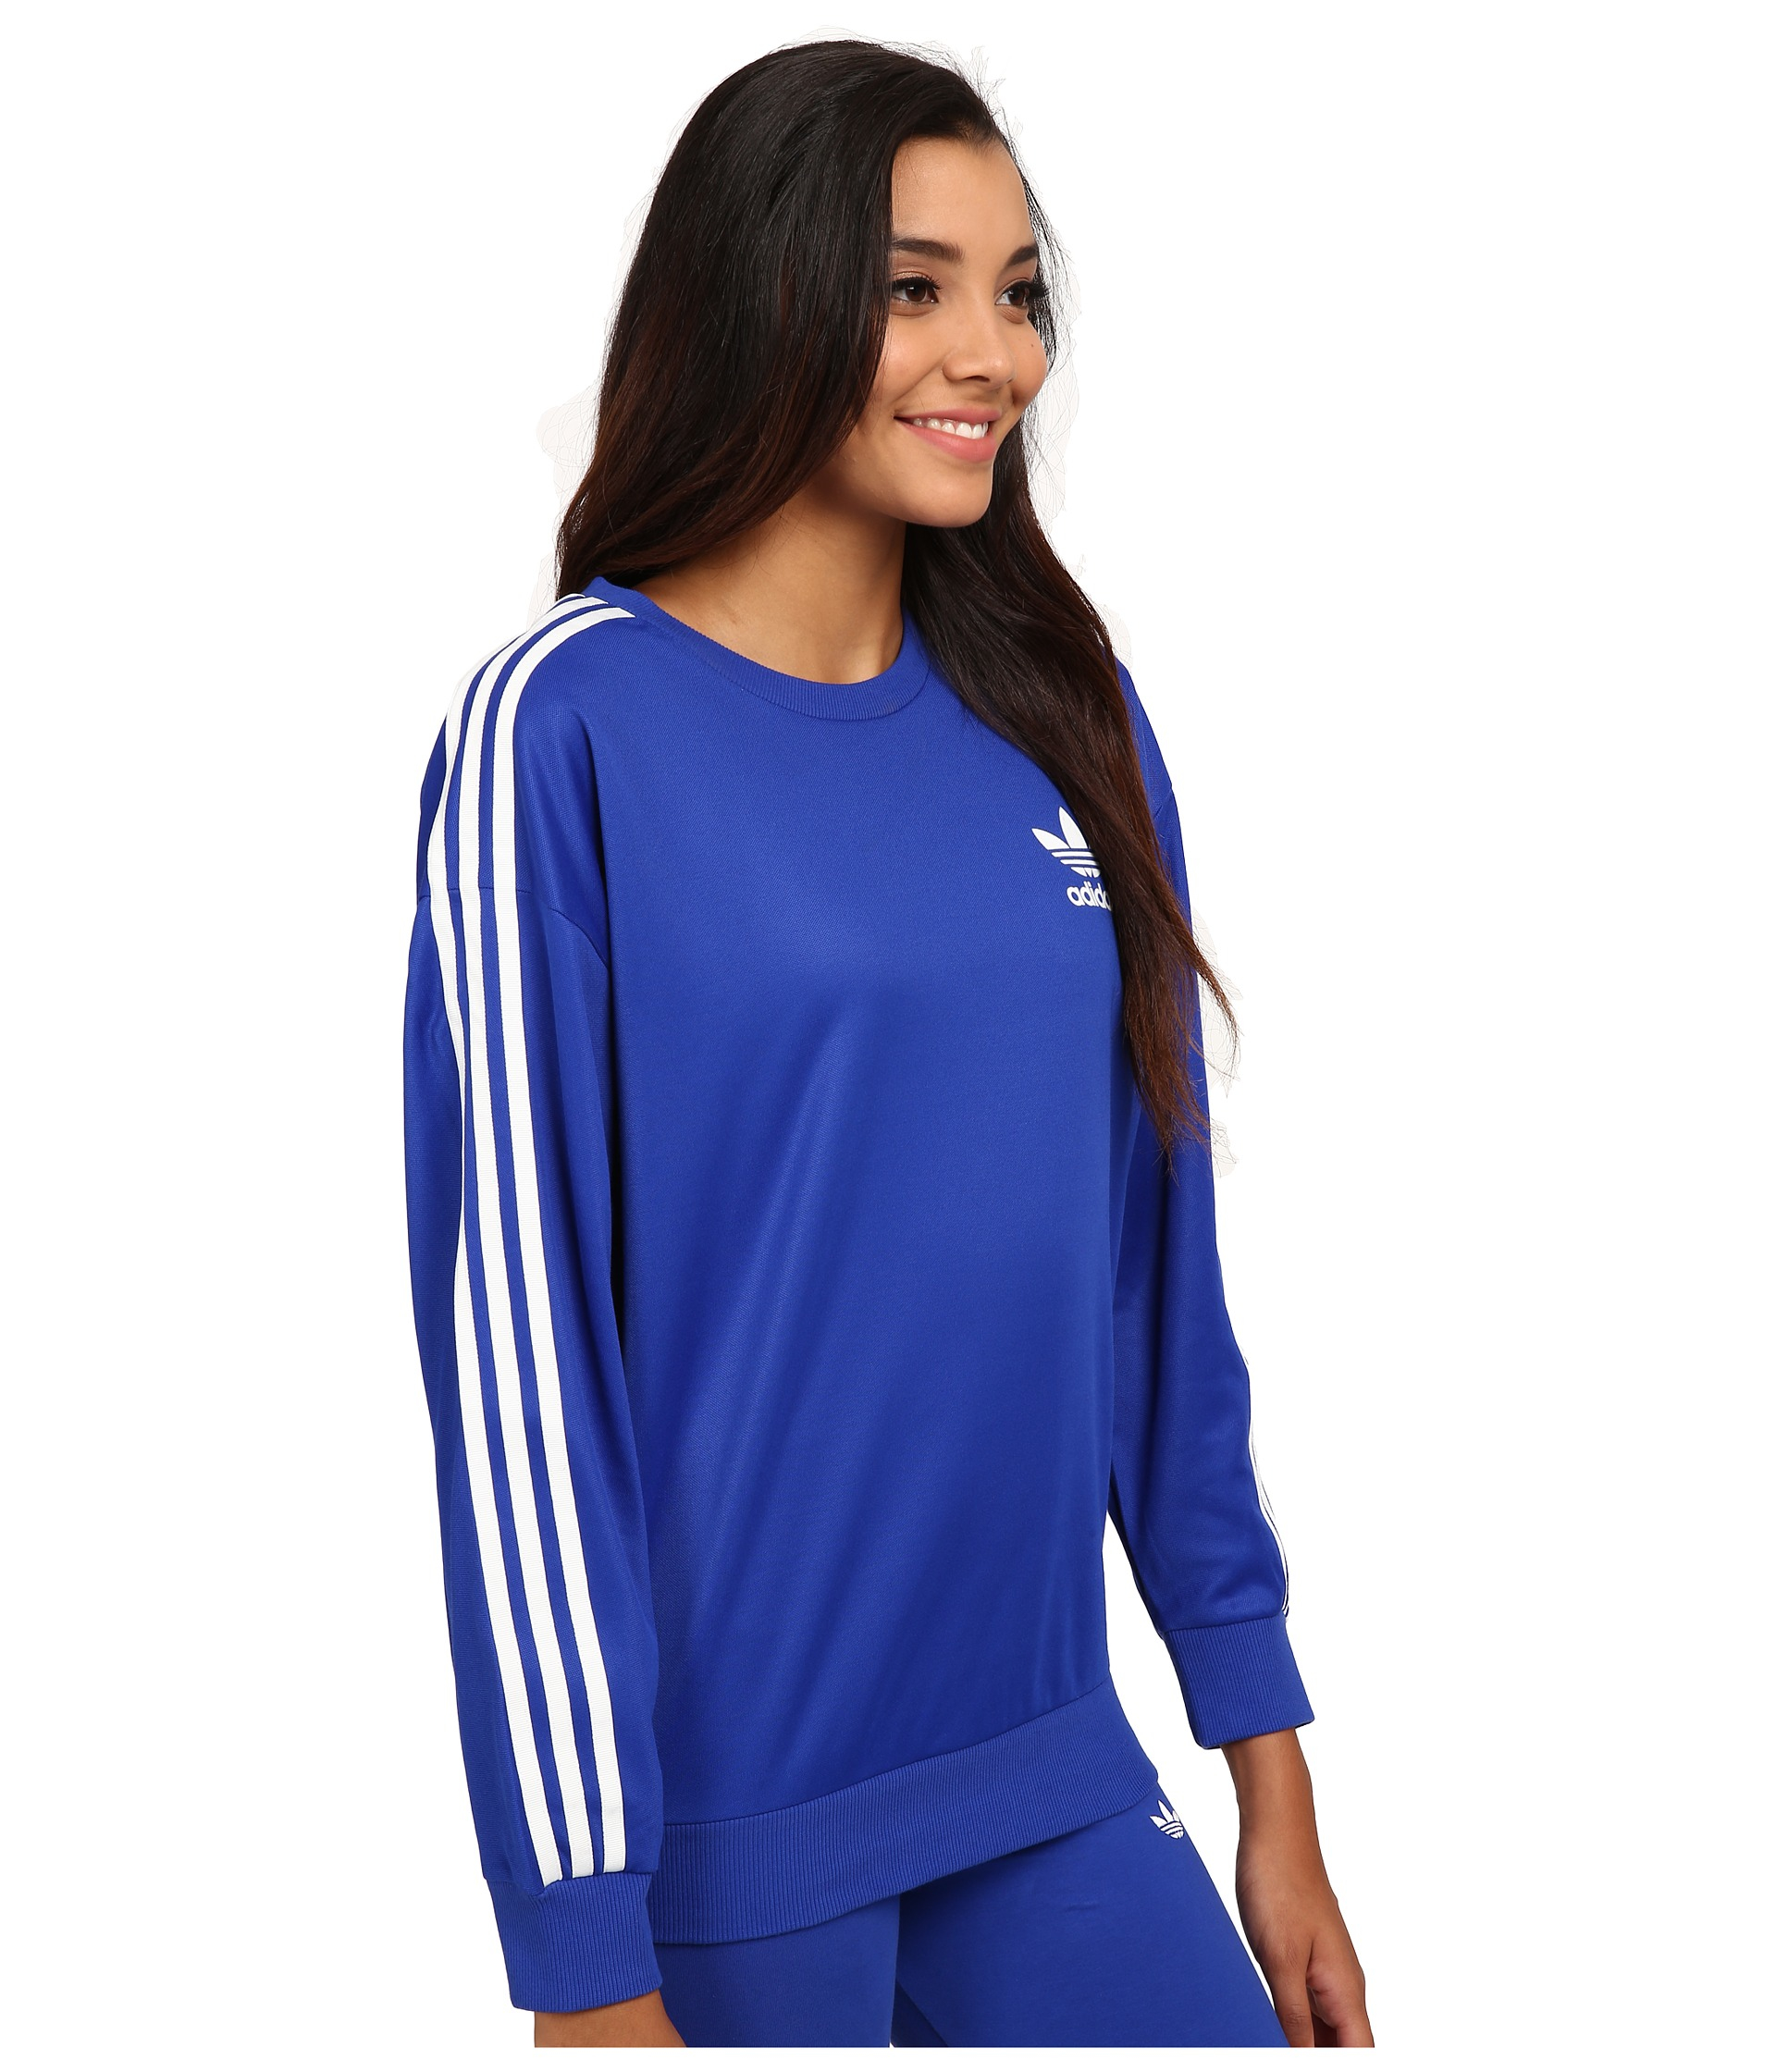 adidas originals 3 stripes sweatshirt in blue lyst. Black Bedroom Furniture Sets. Home Design Ideas